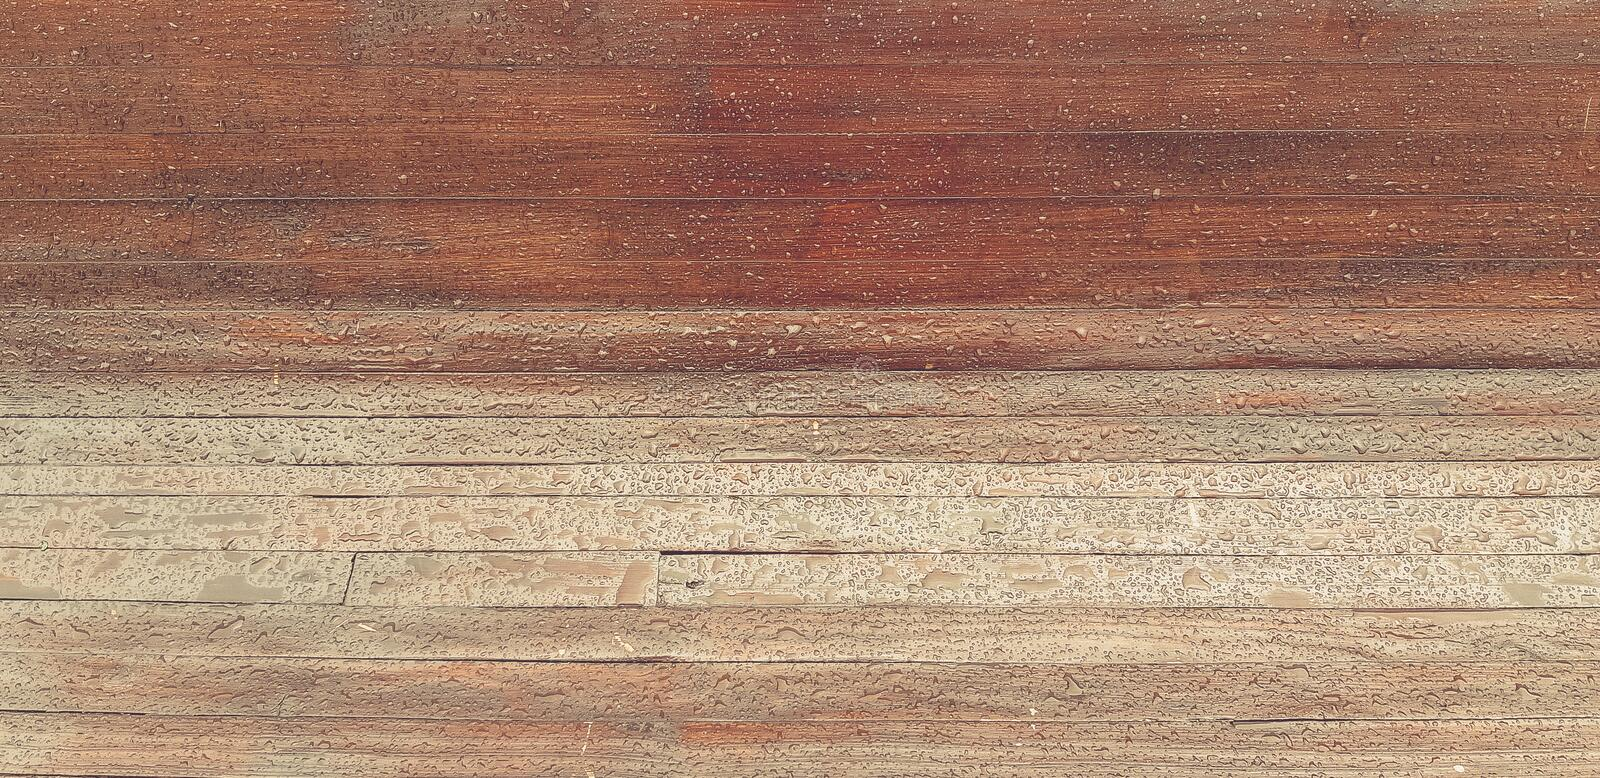 Drops of rain on wooden background. wet bench royalty free stock image